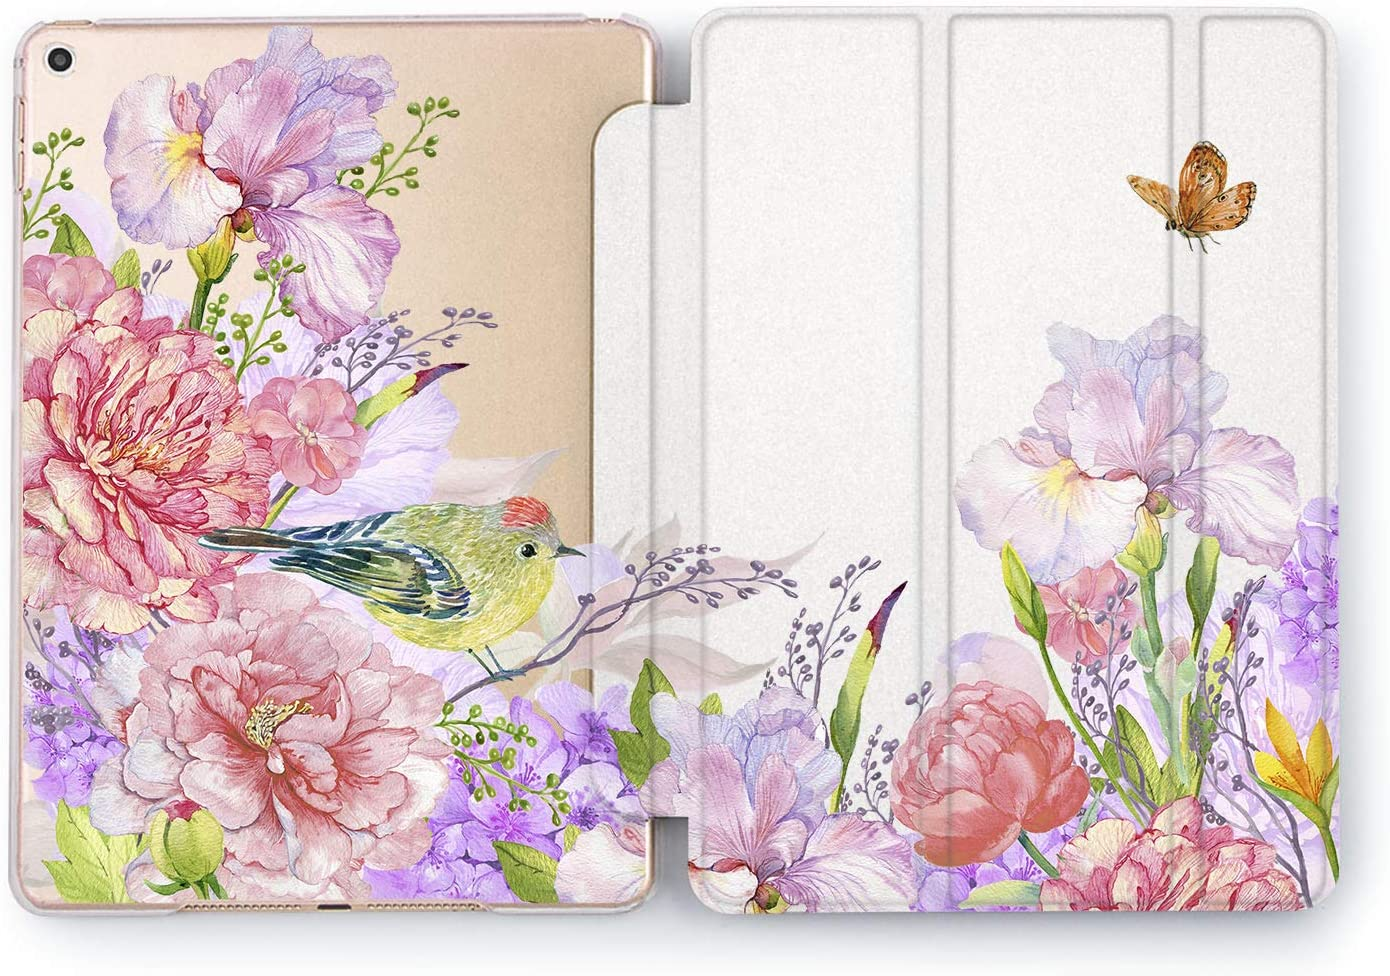 Wonder Wild Case Compatible with Apple iPad Flower Bird Mini 1 2 3 4 Air 2 Pro 10.5 12.9 Tablet 11 10.2 9.7 inch Cover Stand Pink Peony Cute Flower Pretty Sweet Beautiful Roses Butterfly Gentle Art